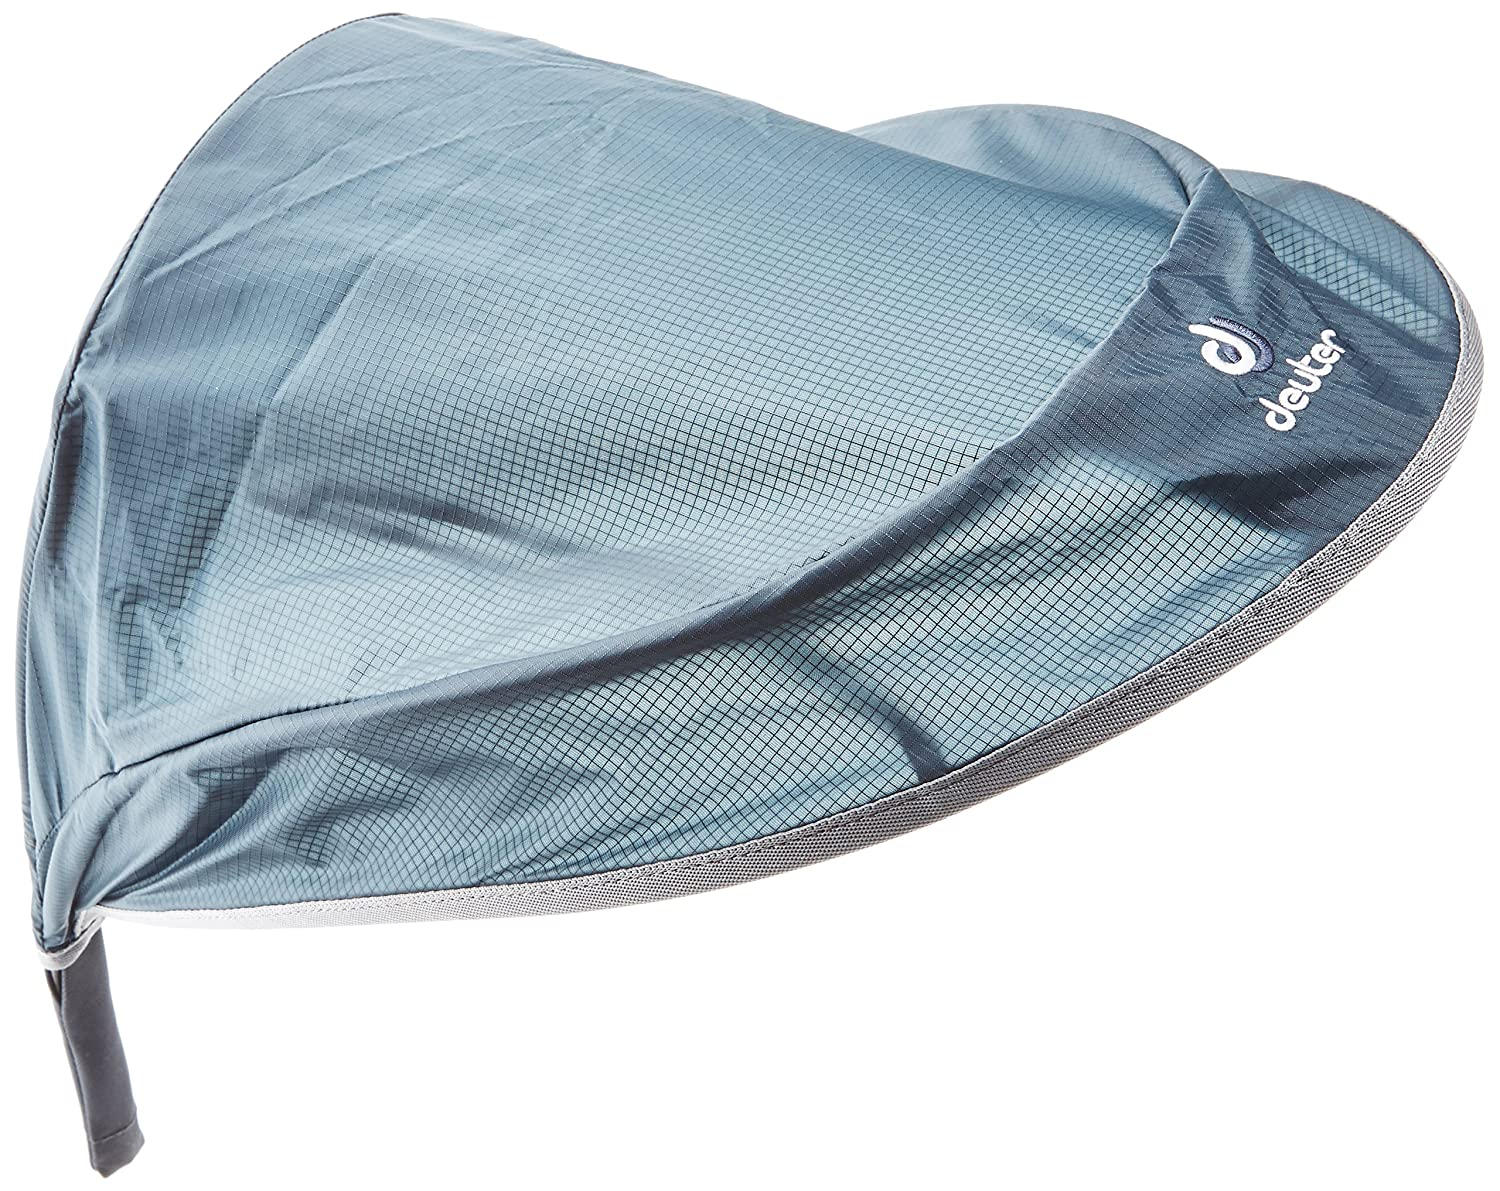 Deuter Kid Comfort Sun Roof/ Rain Cover: Granite 36614-4000